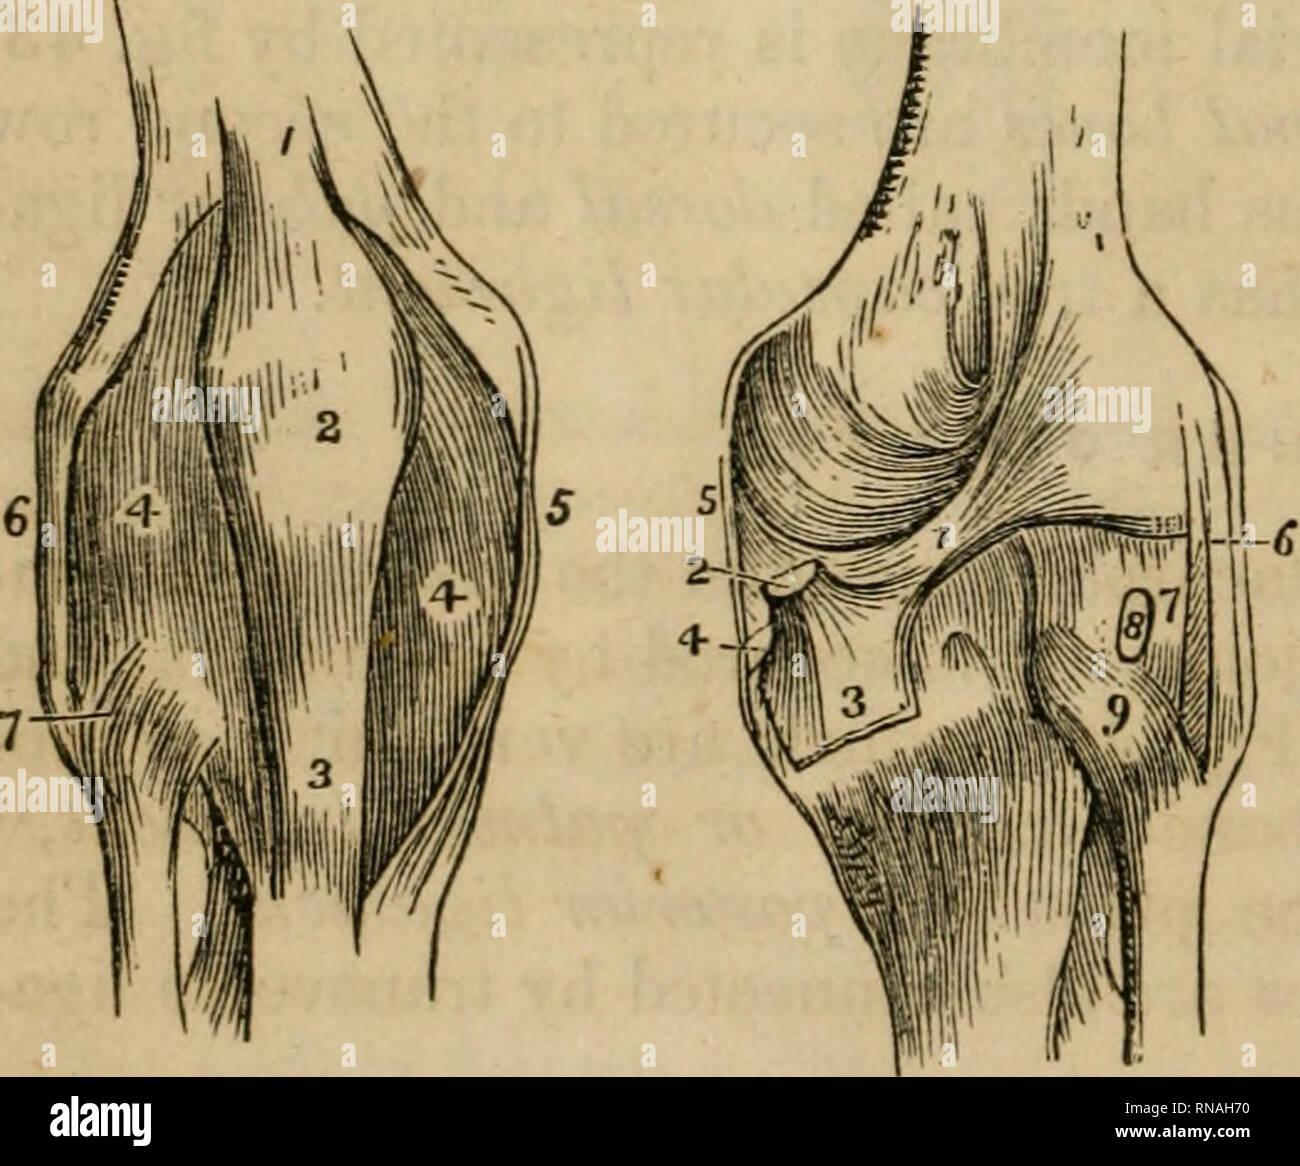 Glatter Renforce Ligamentum Teres Photos Ligamentum Teres Images Alamy